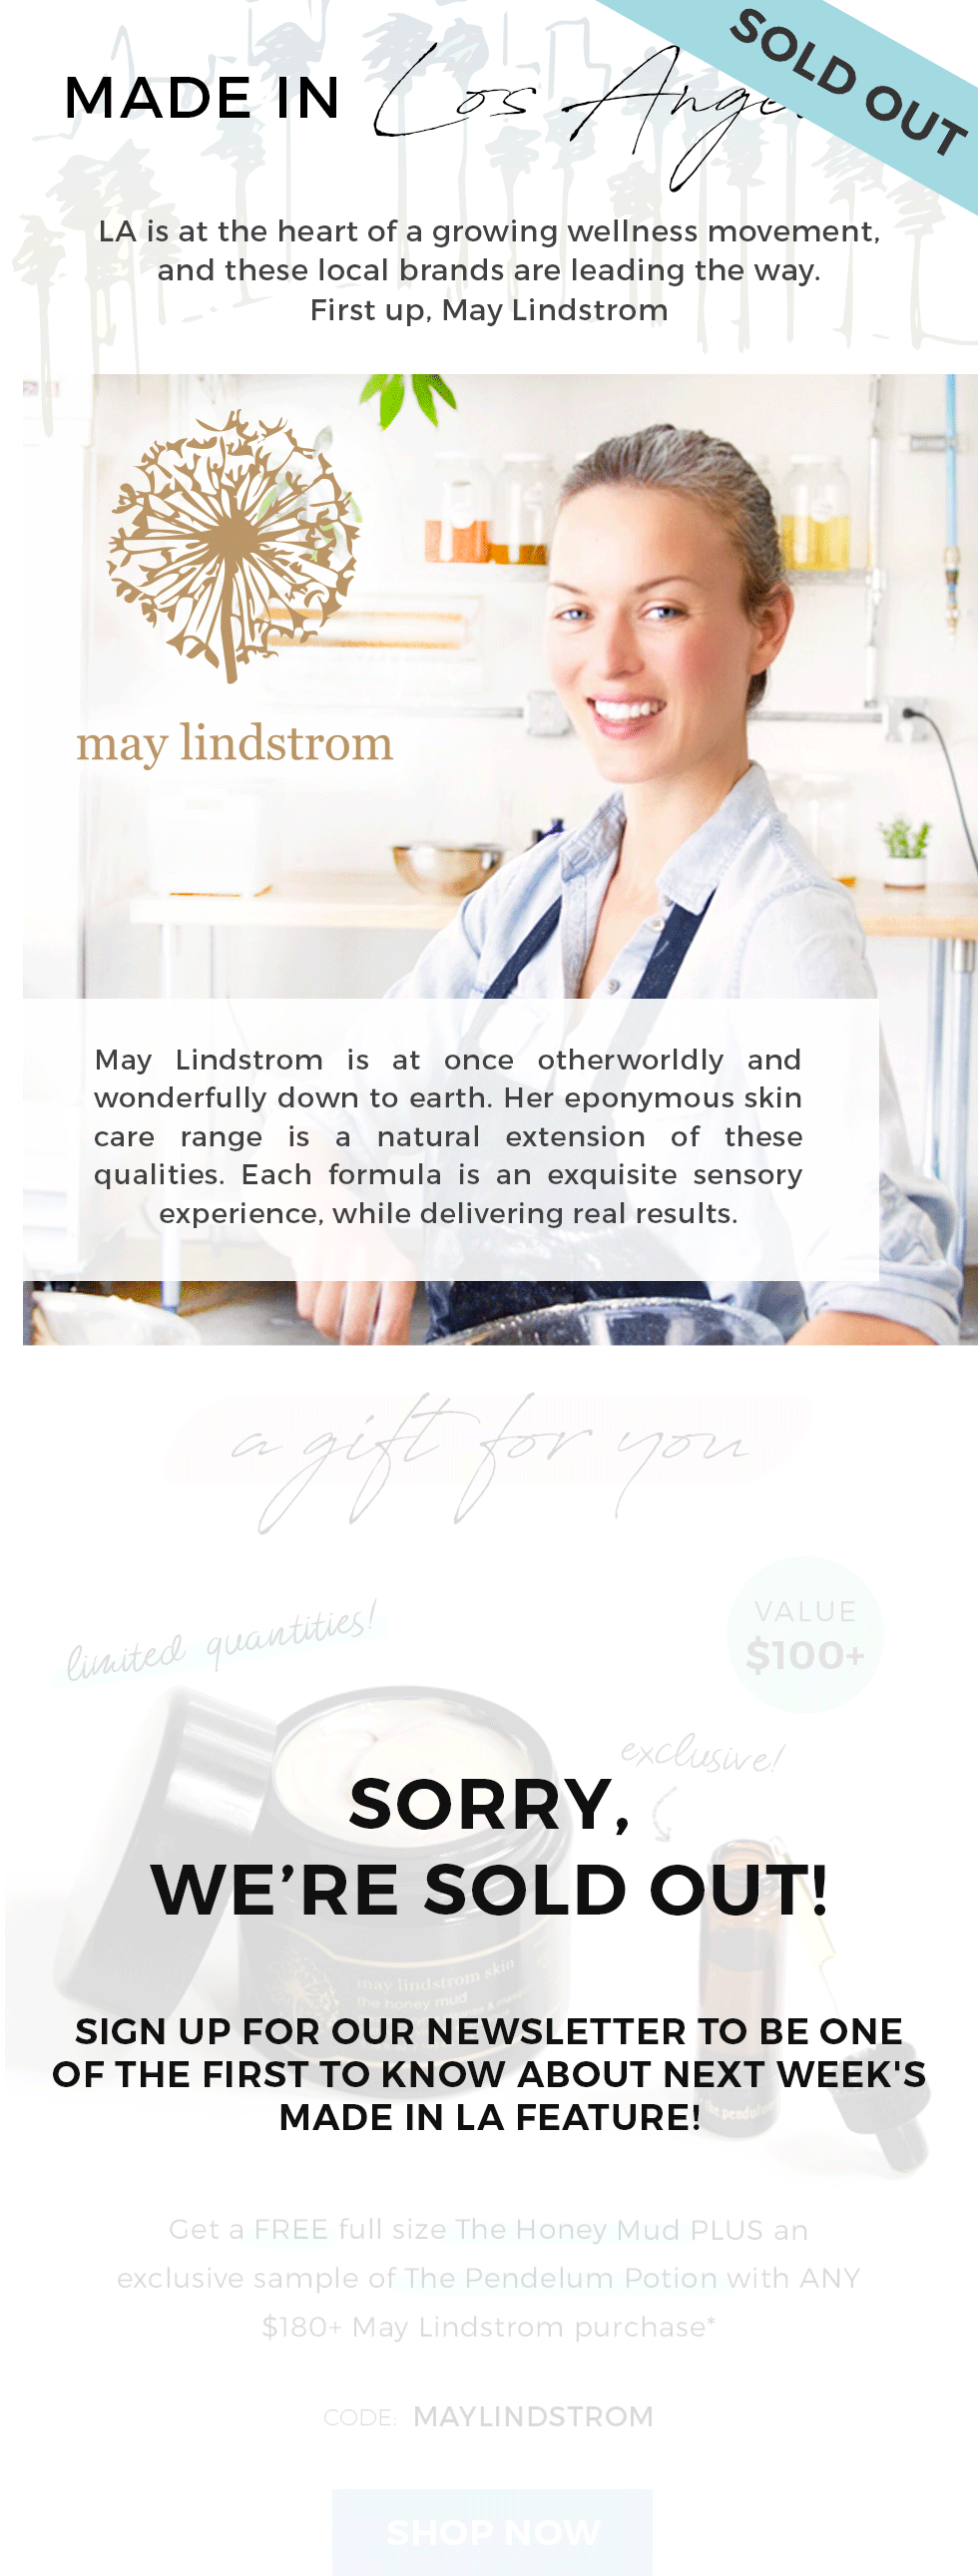 Made in LA: May Lindstrom Gift with Purchase